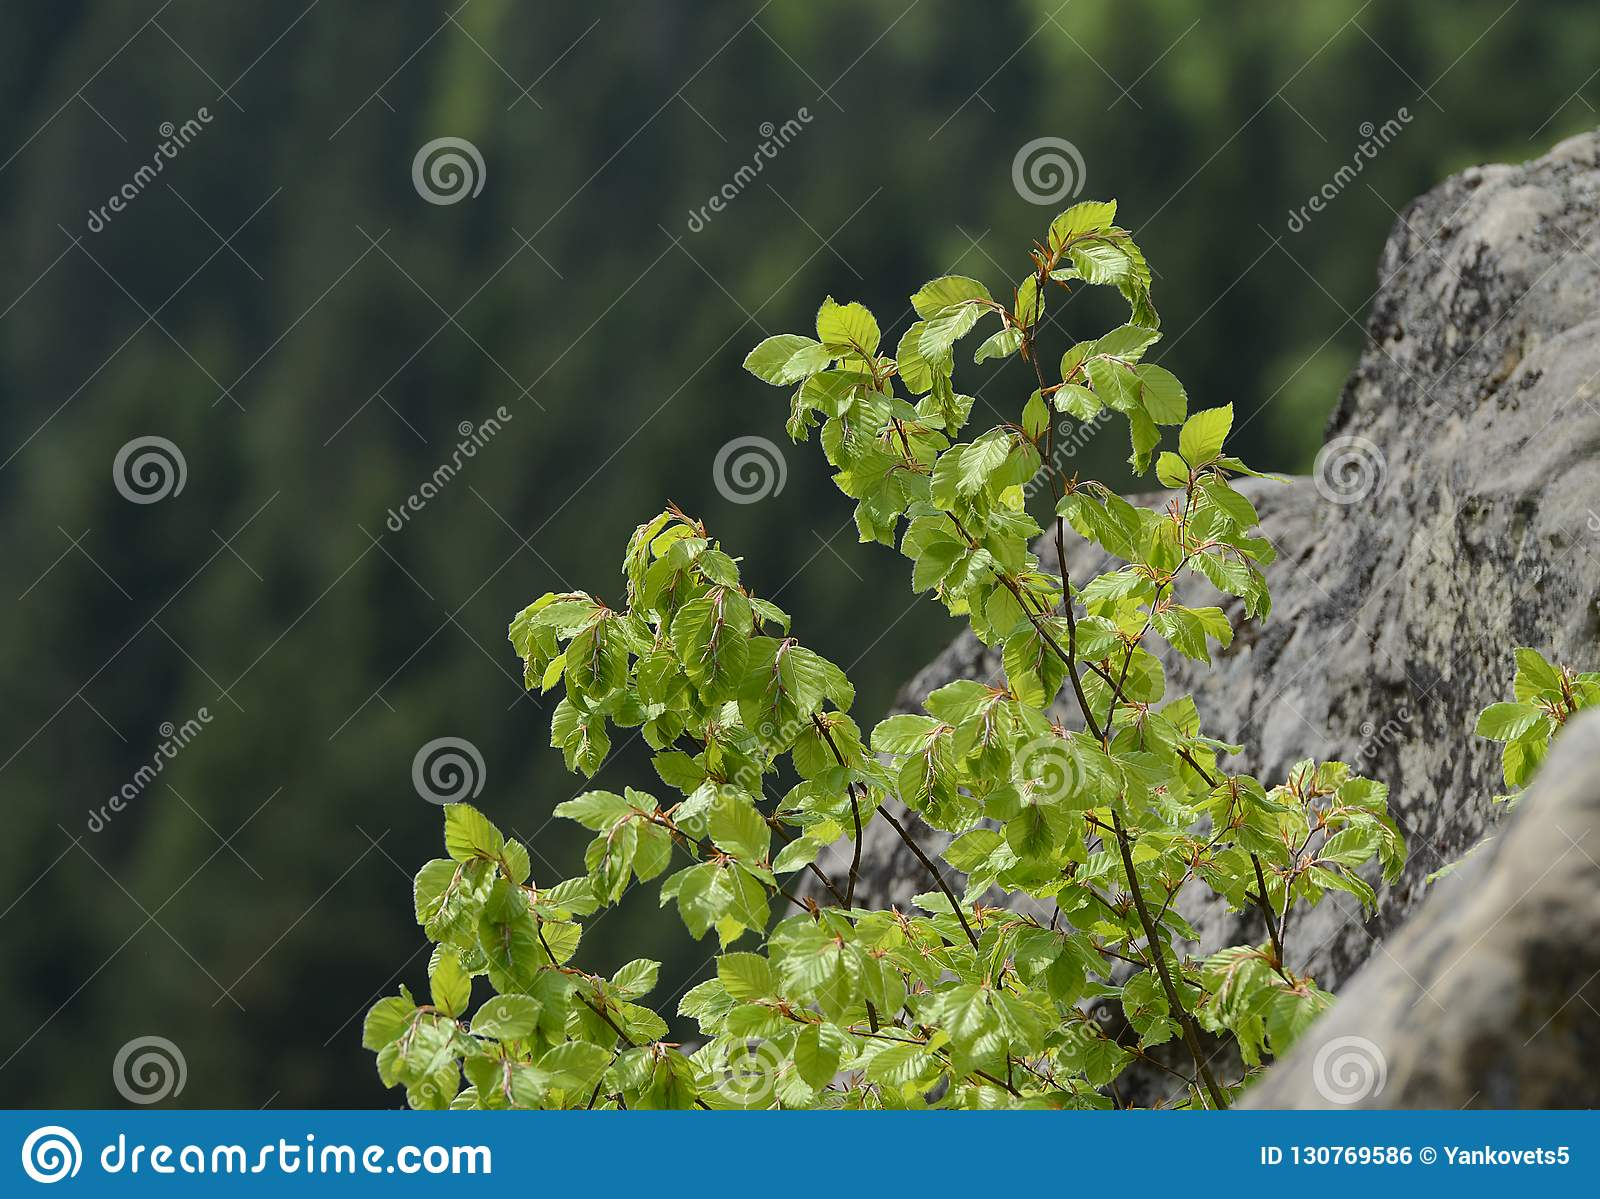 The bush with green succulent leaves grows on gray rocks overgrown with moss in Ukraine